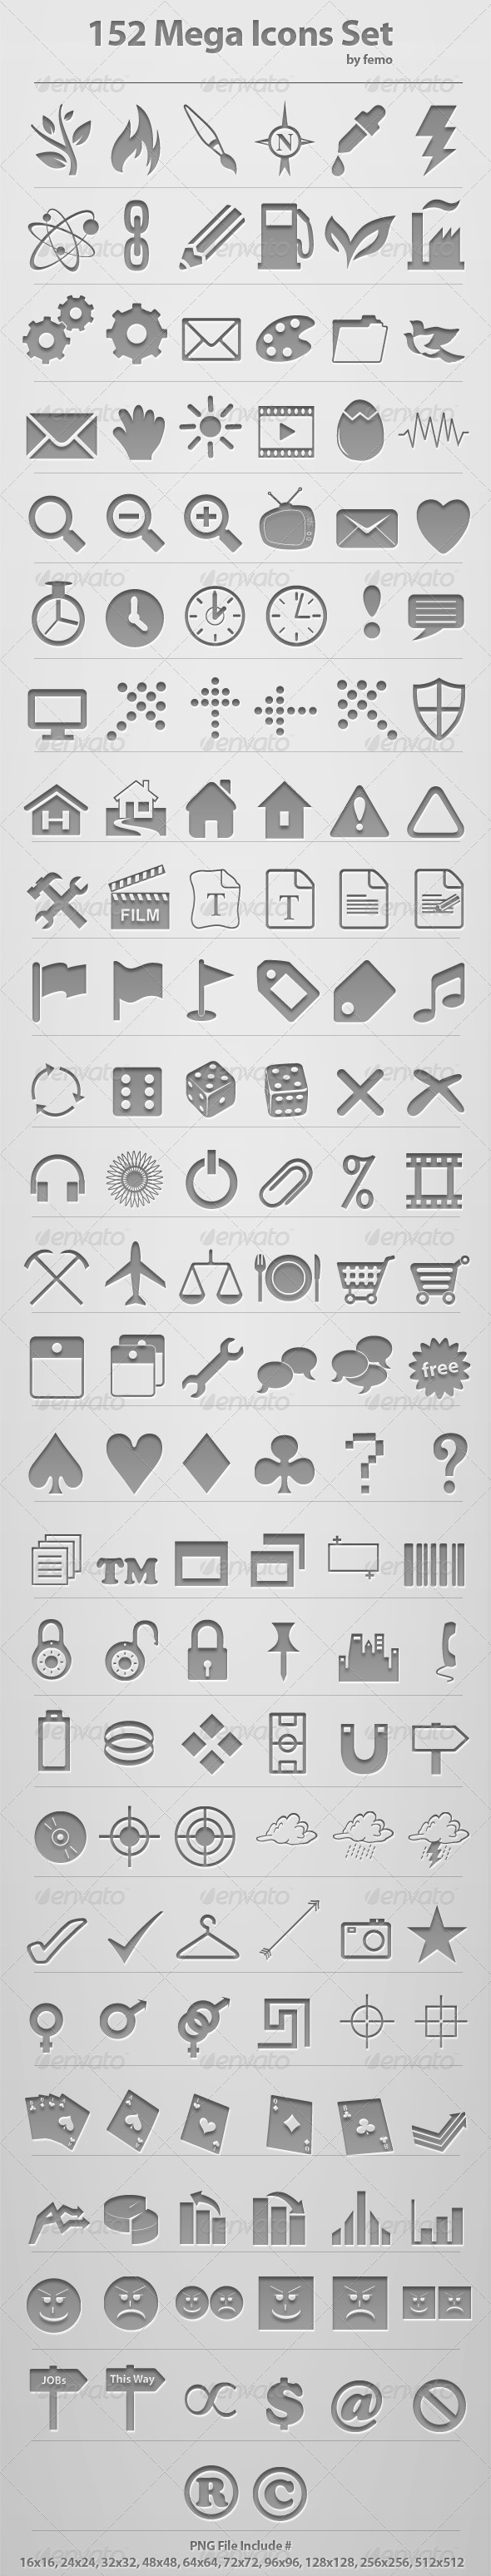 152 Mega Icons Set - Web Icons